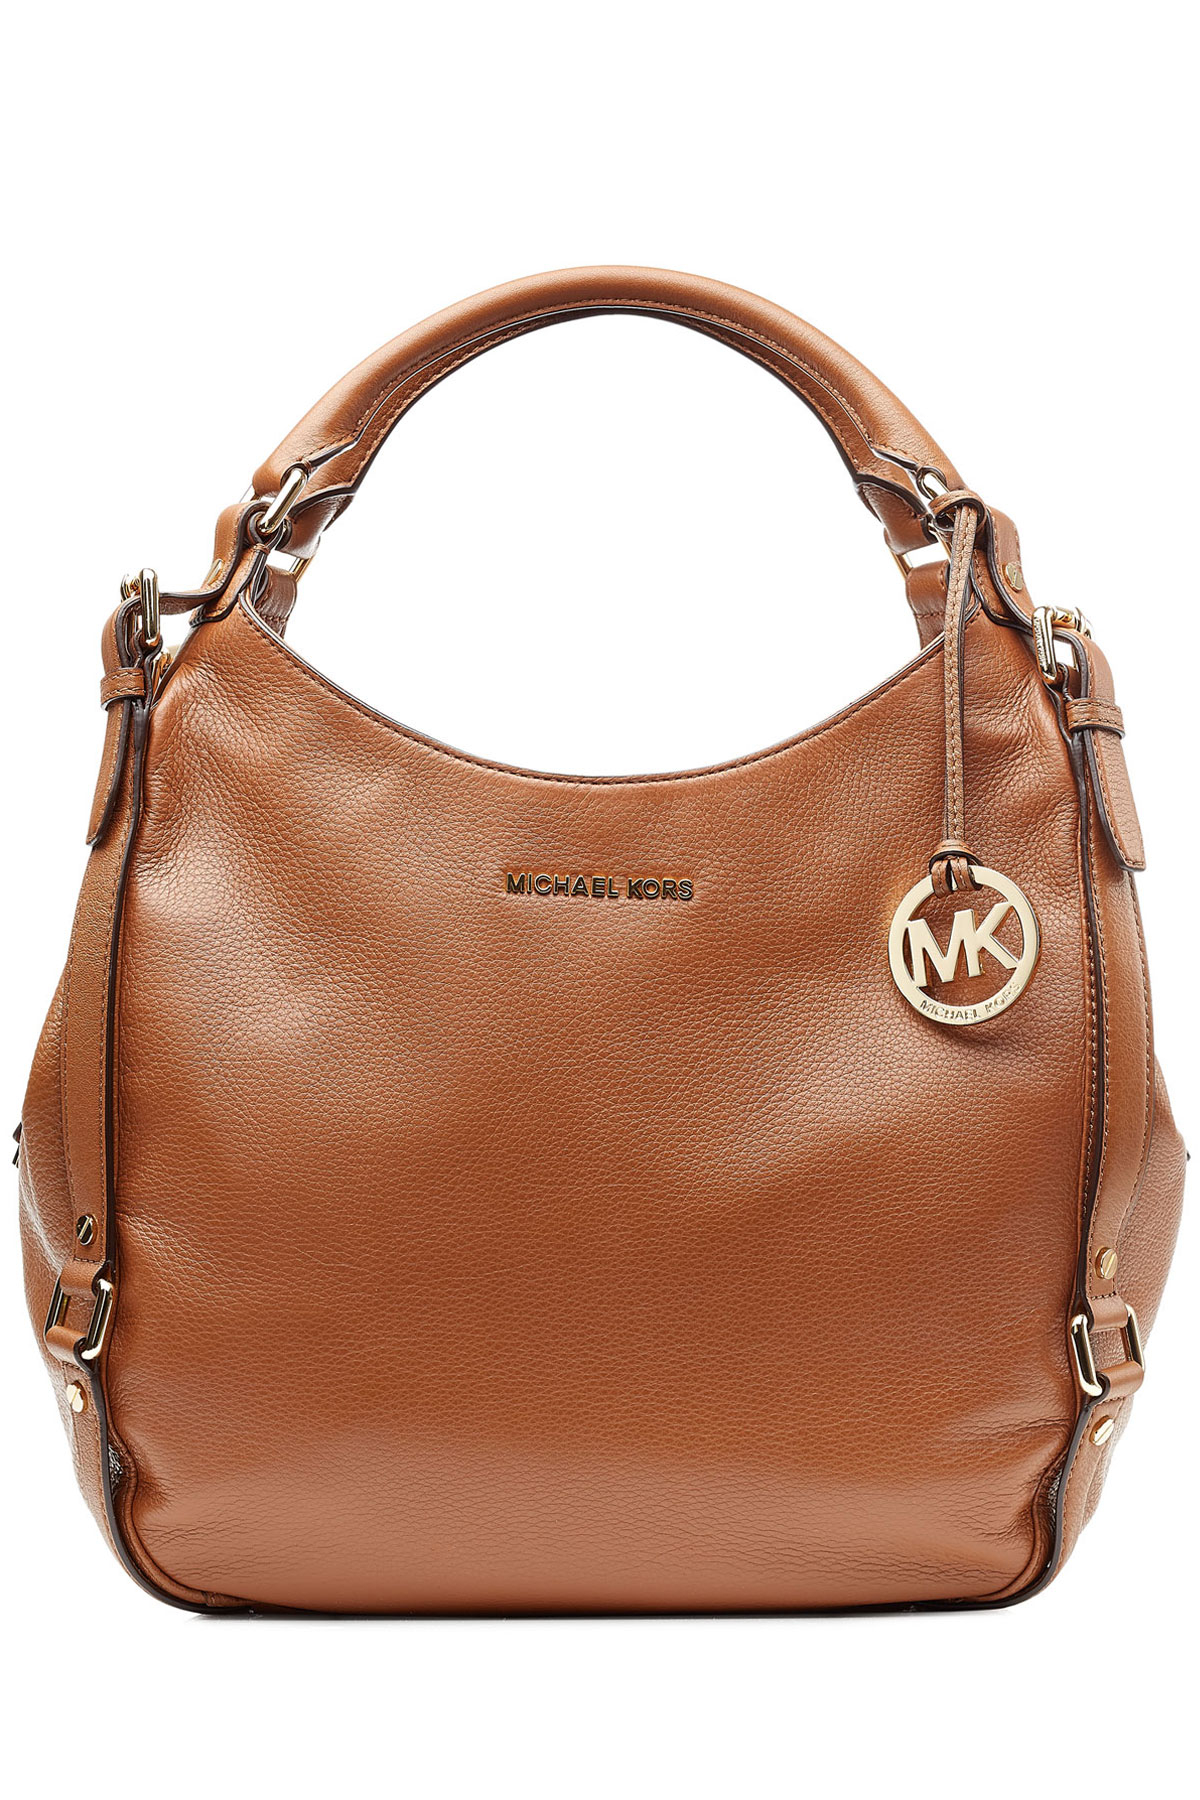 michael michael kors leather bedford hobo bag in brown lyst. Black Bedroom Furniture Sets. Home Design Ideas